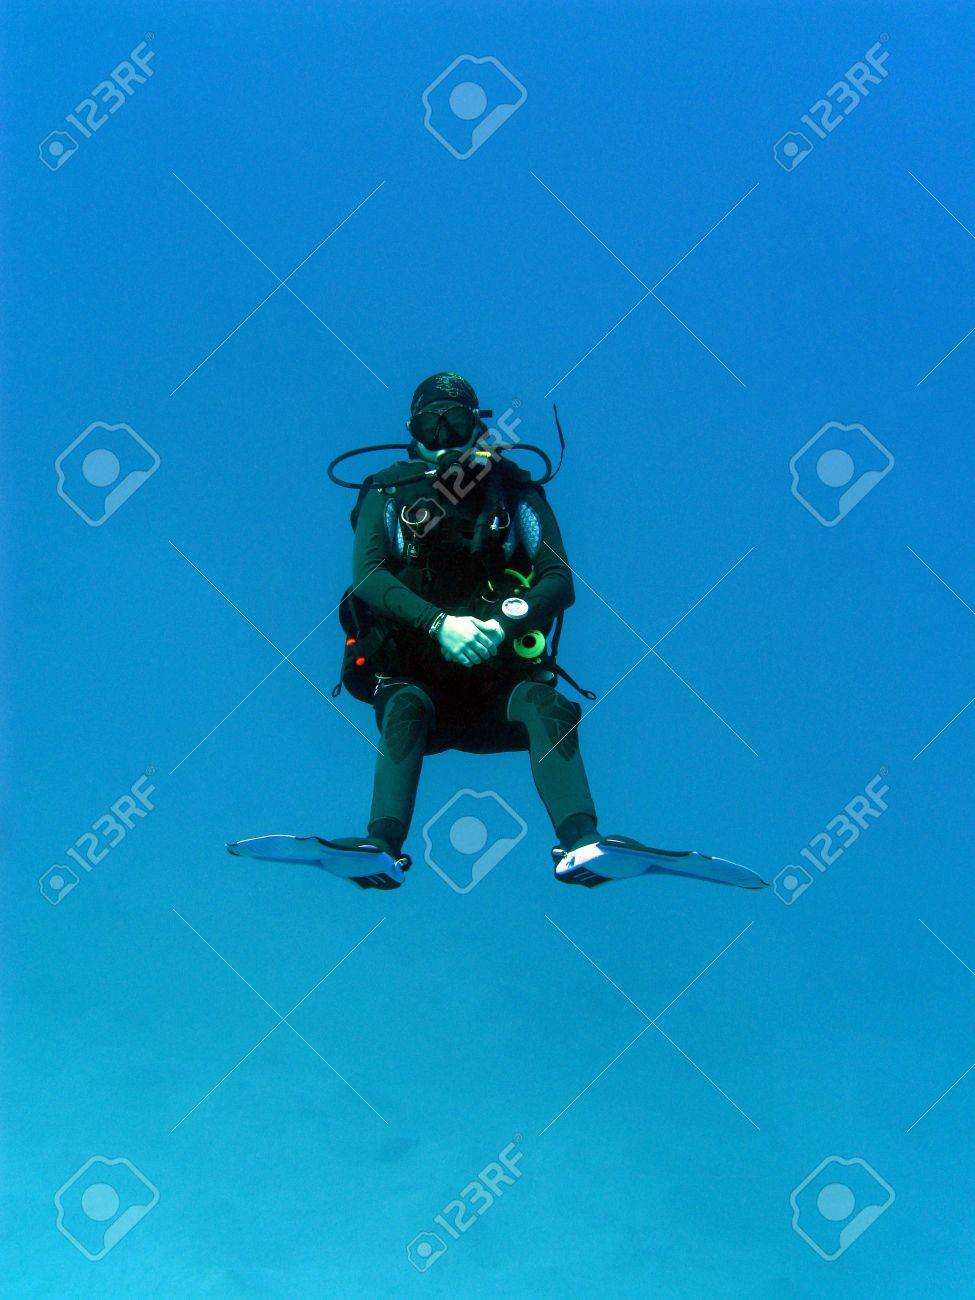 girl diver under water at blue backgrund Stock Photo - 18608880